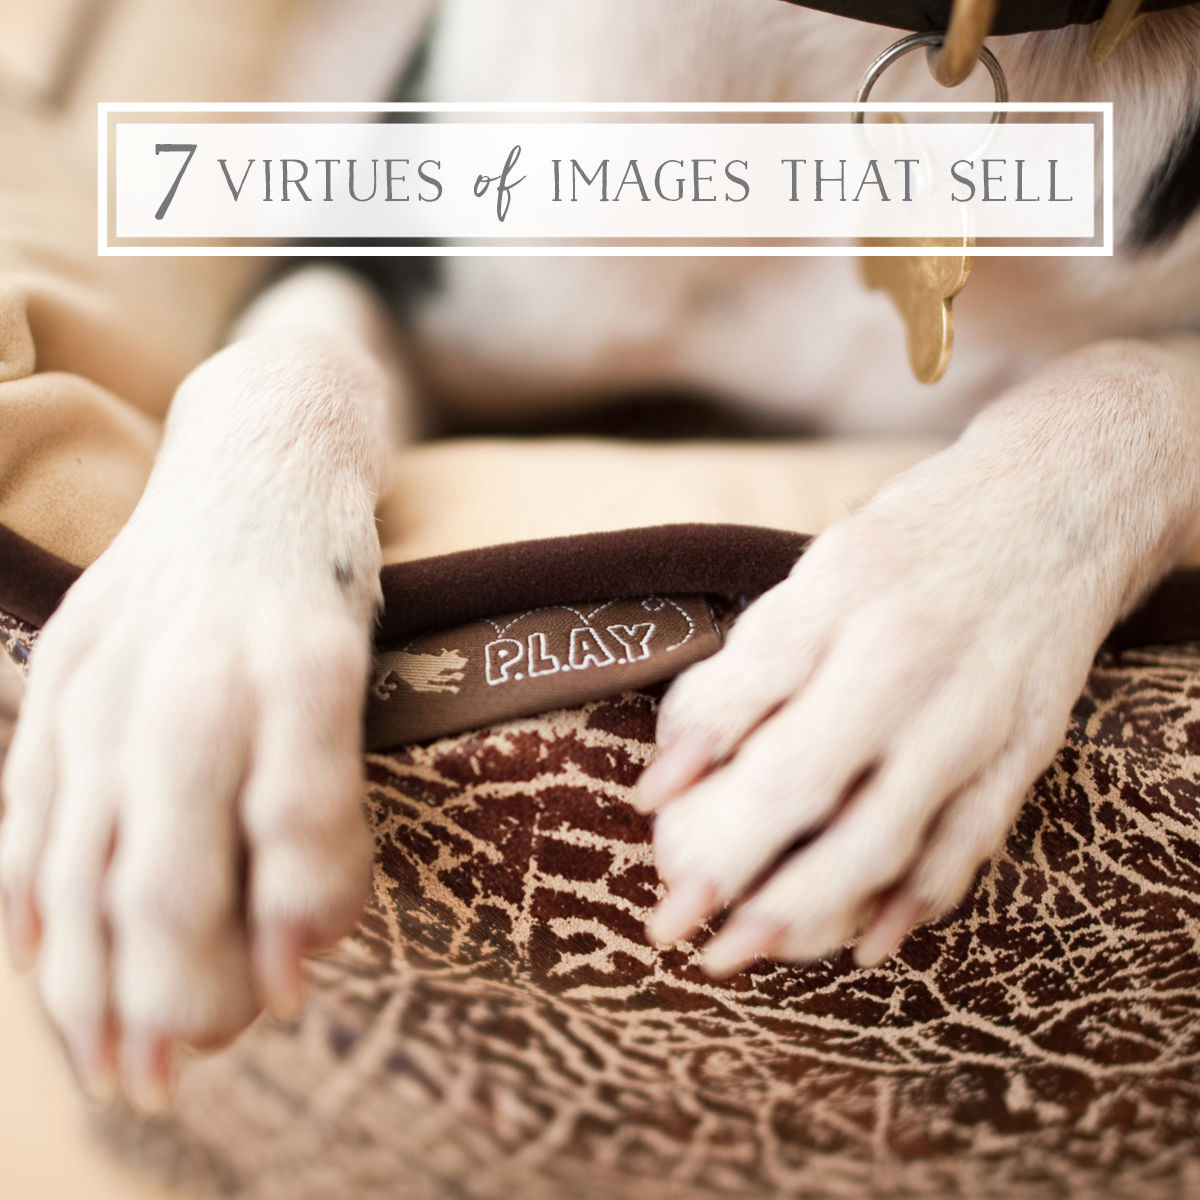 7 Virtues of Images that Sell